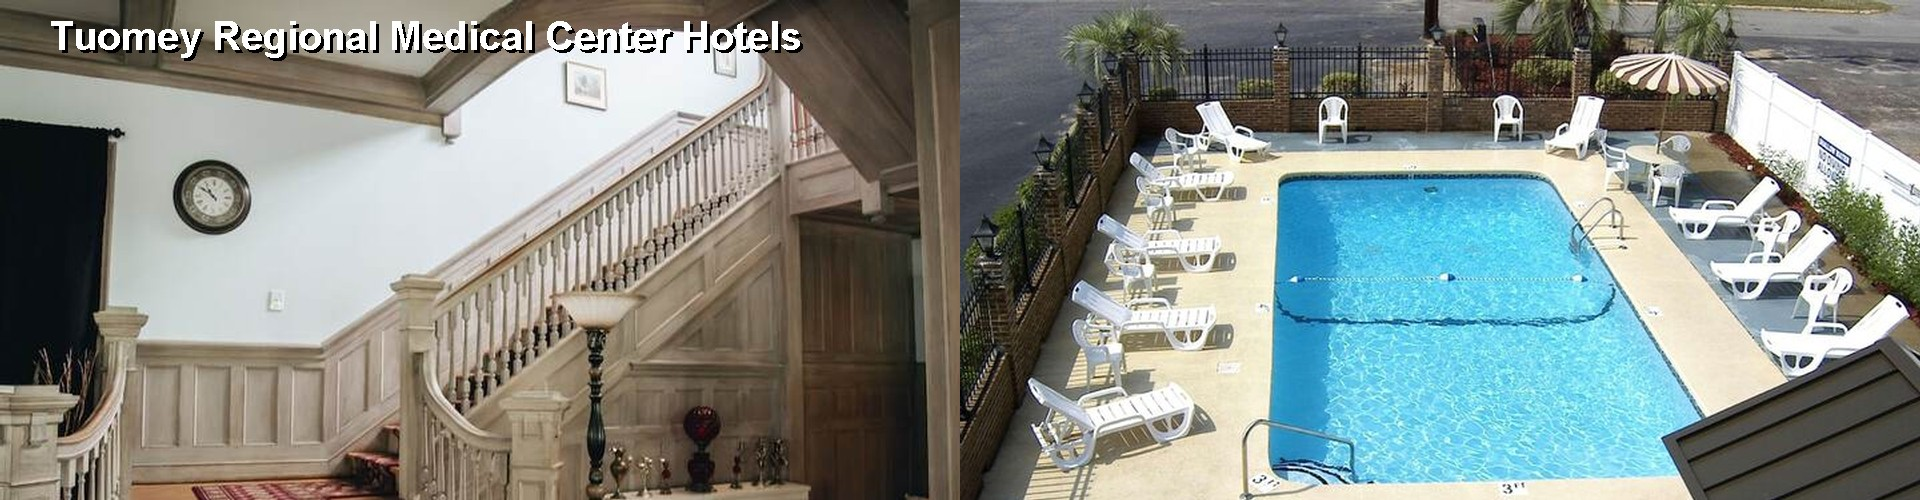 5 Best Hotels near Tuomey Regional Medical Center